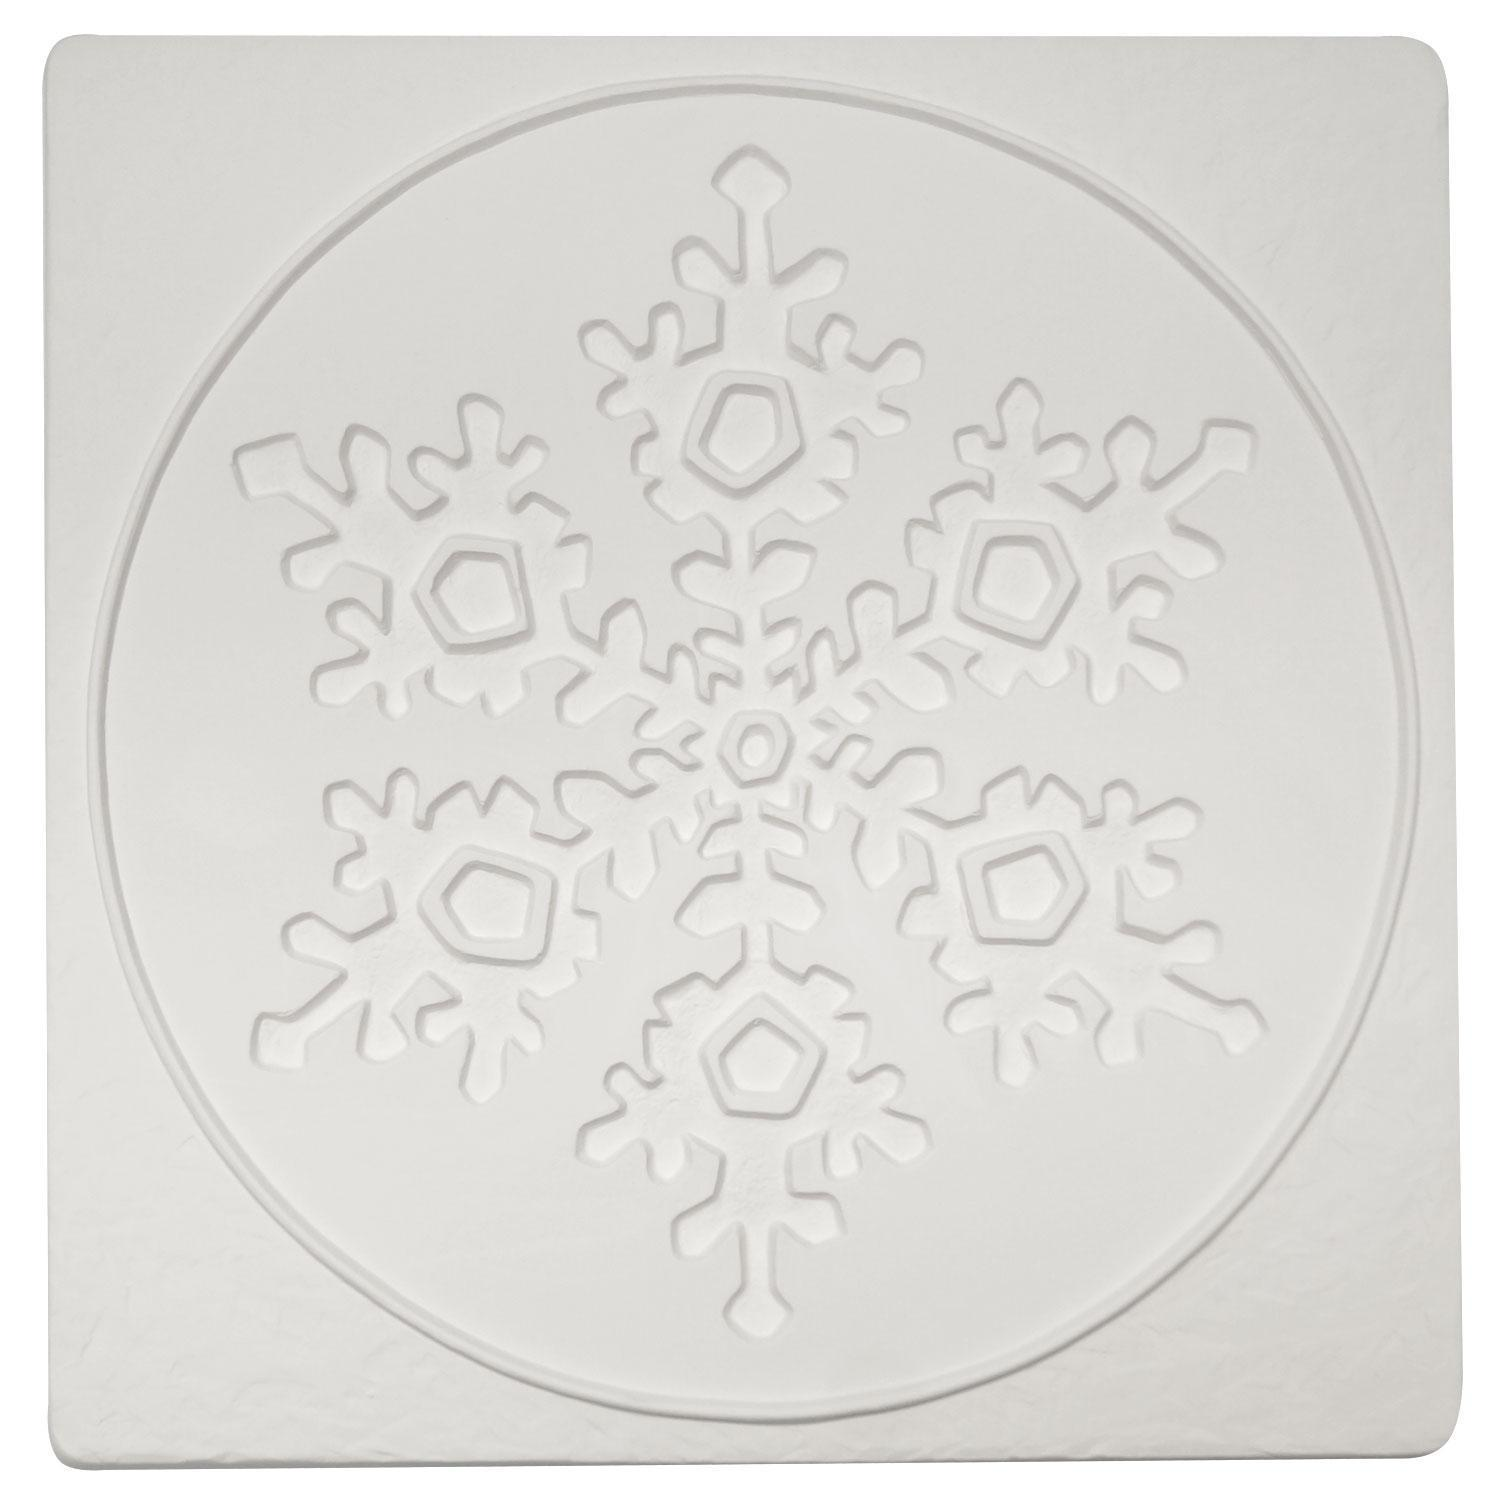 Snowflake in Square Texture Mold